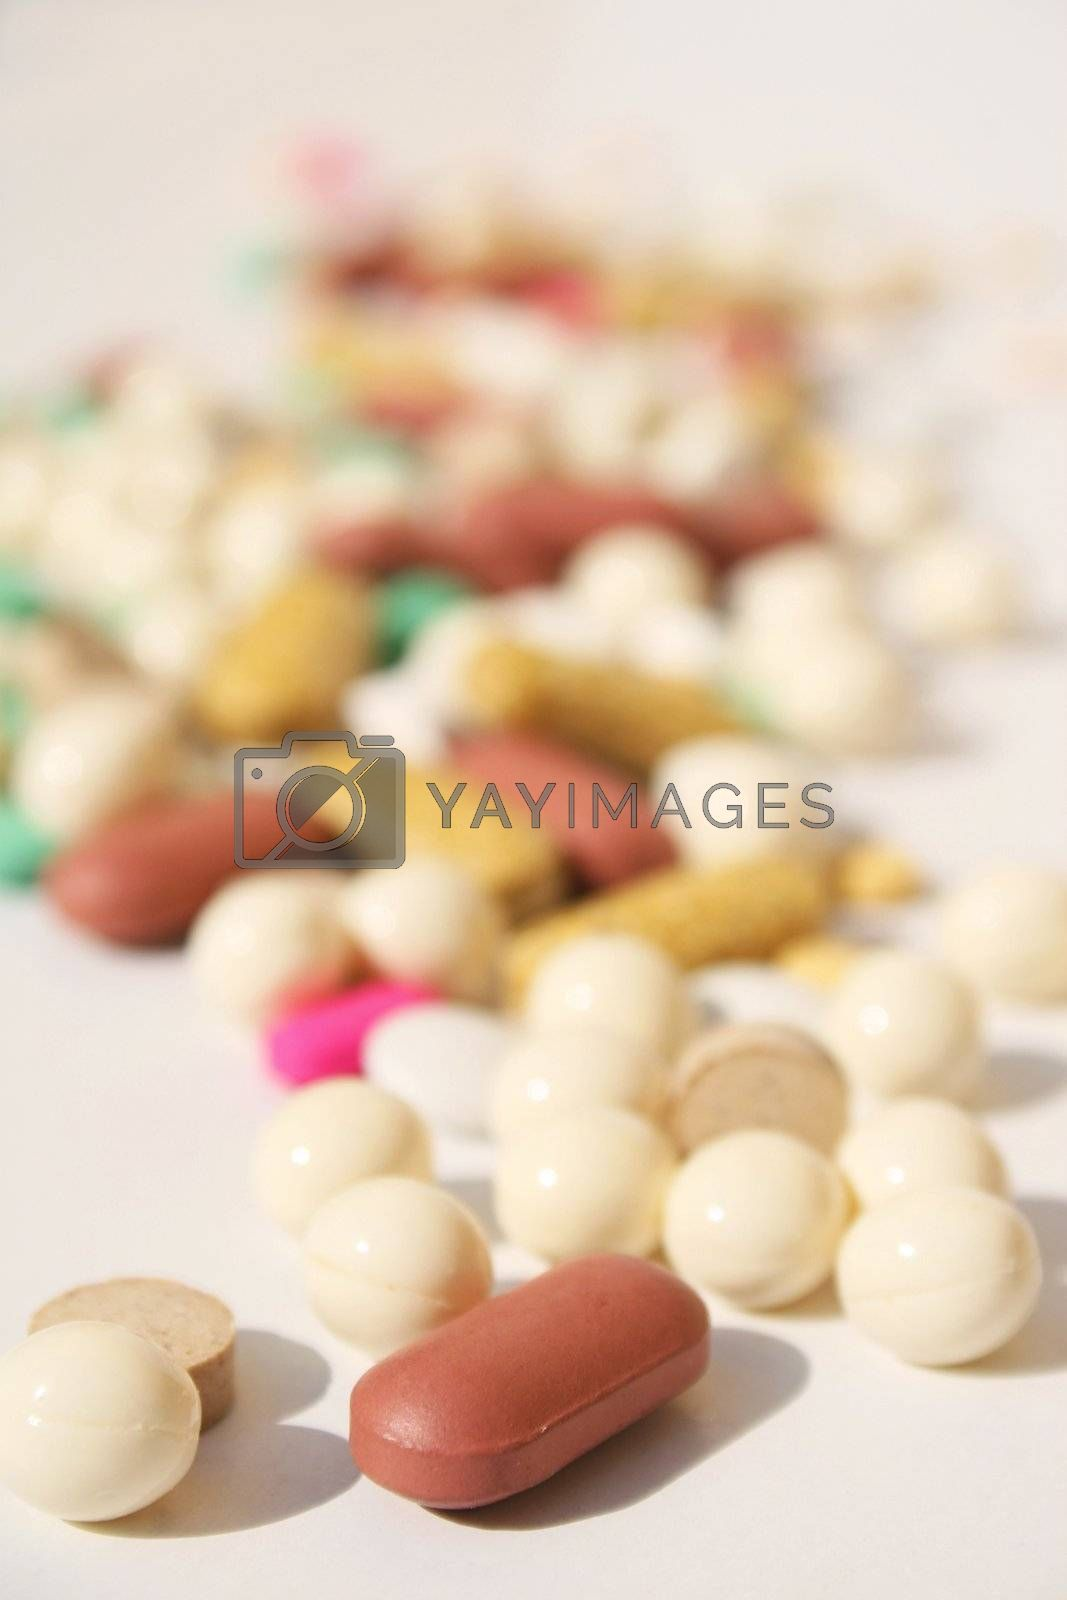 Various pills against white background with shallow depth of field on foreground